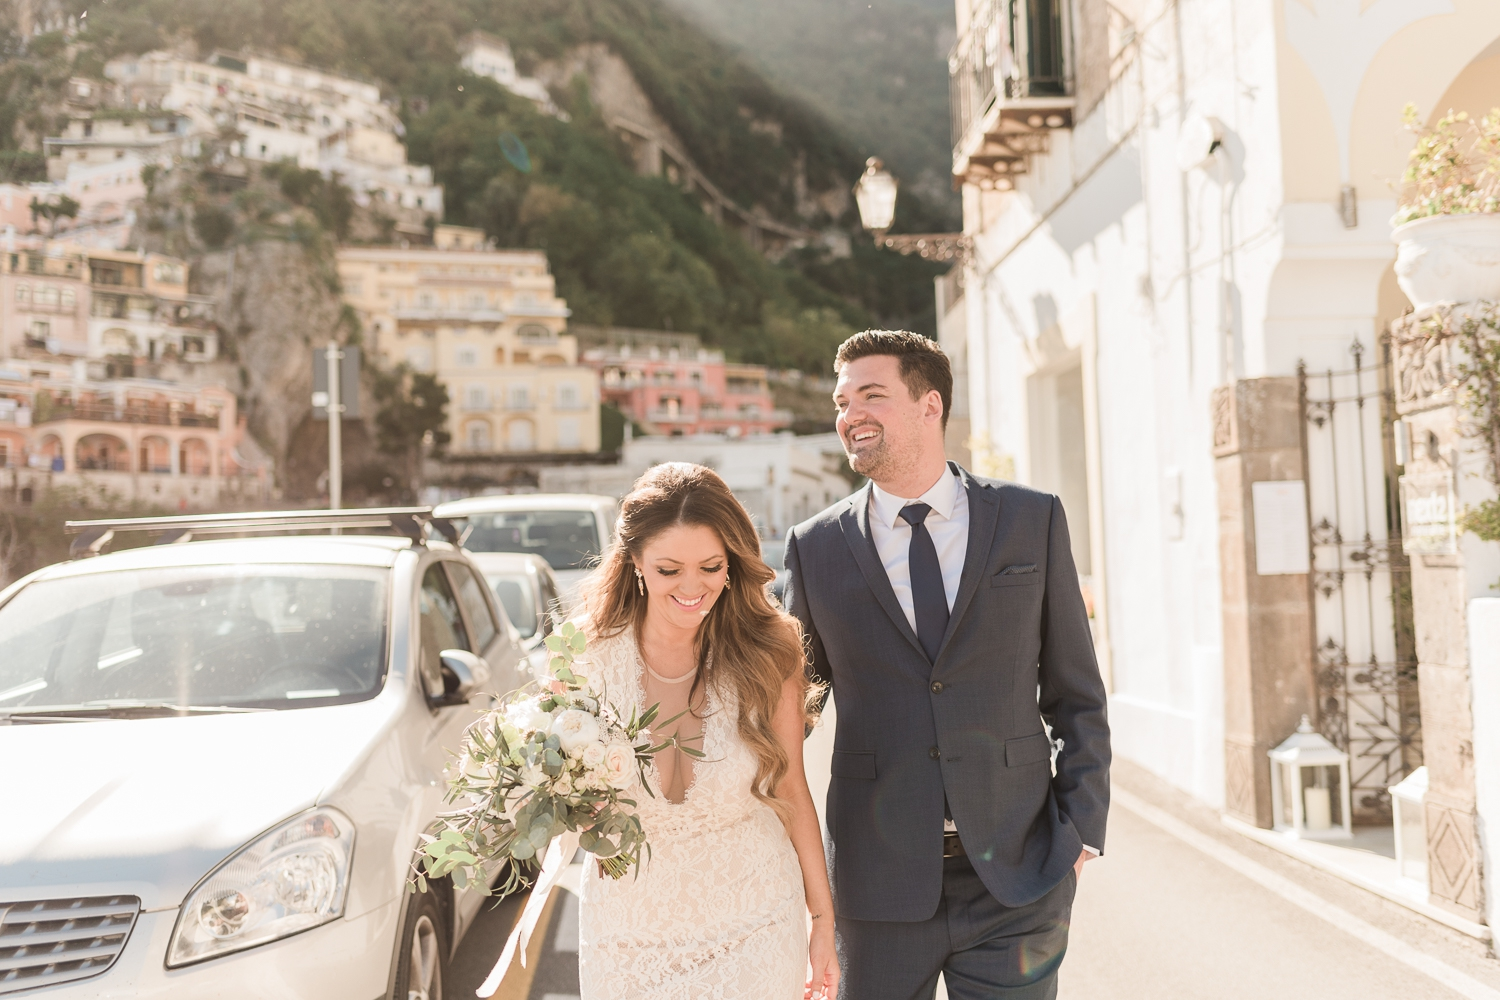 positano-wedding-photographer 20.jpg